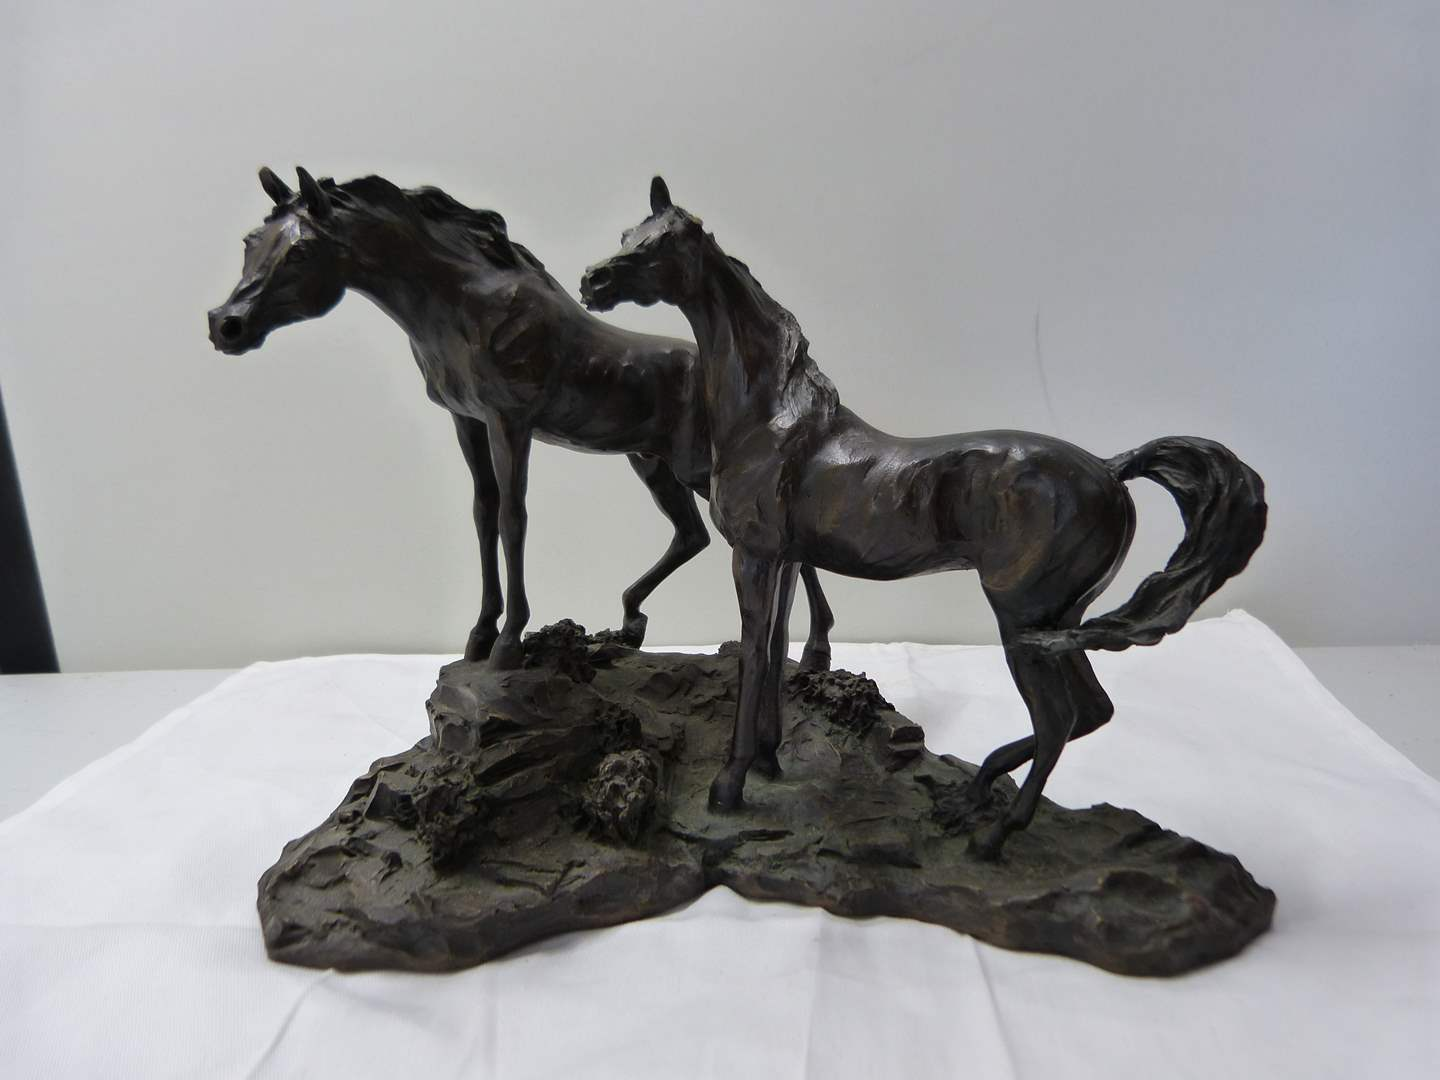 """Lot # 267  """"Intruder"""" by Lanford Monroe Bronze horses (Franklin Gallery) one horse is missing an ear (main image)"""